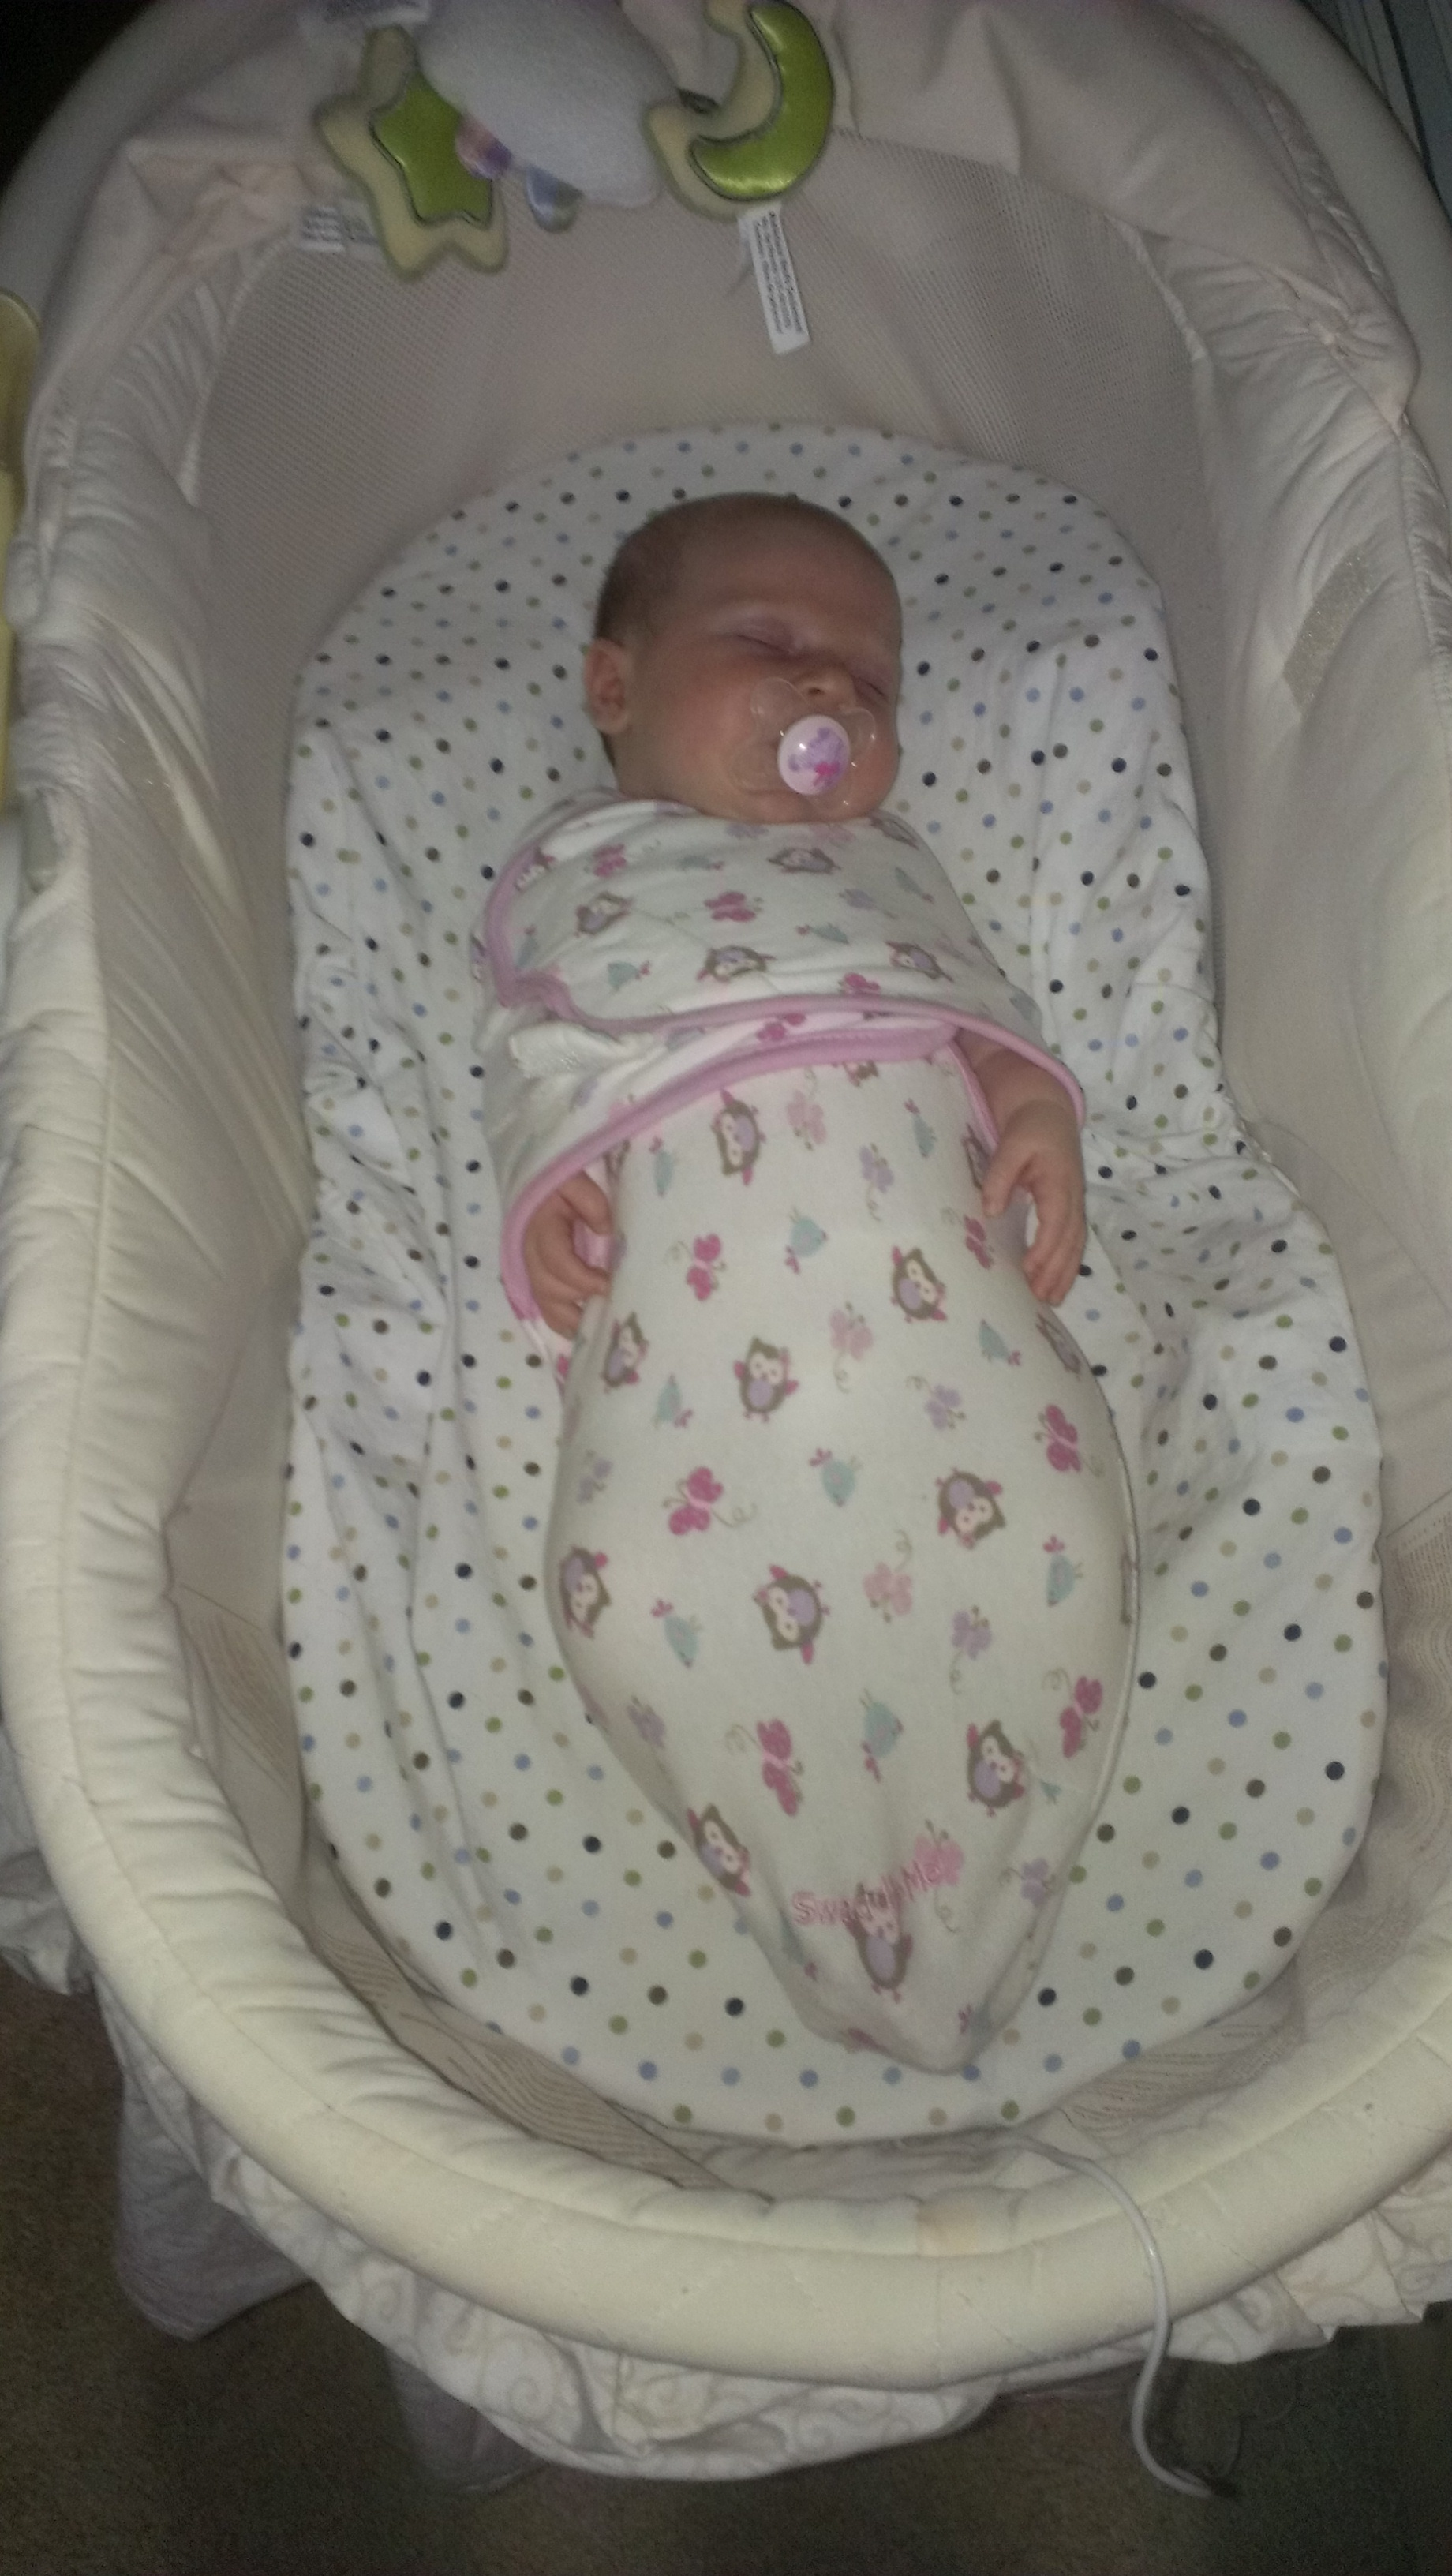 Maggie in a Swaddler (age approx one month)